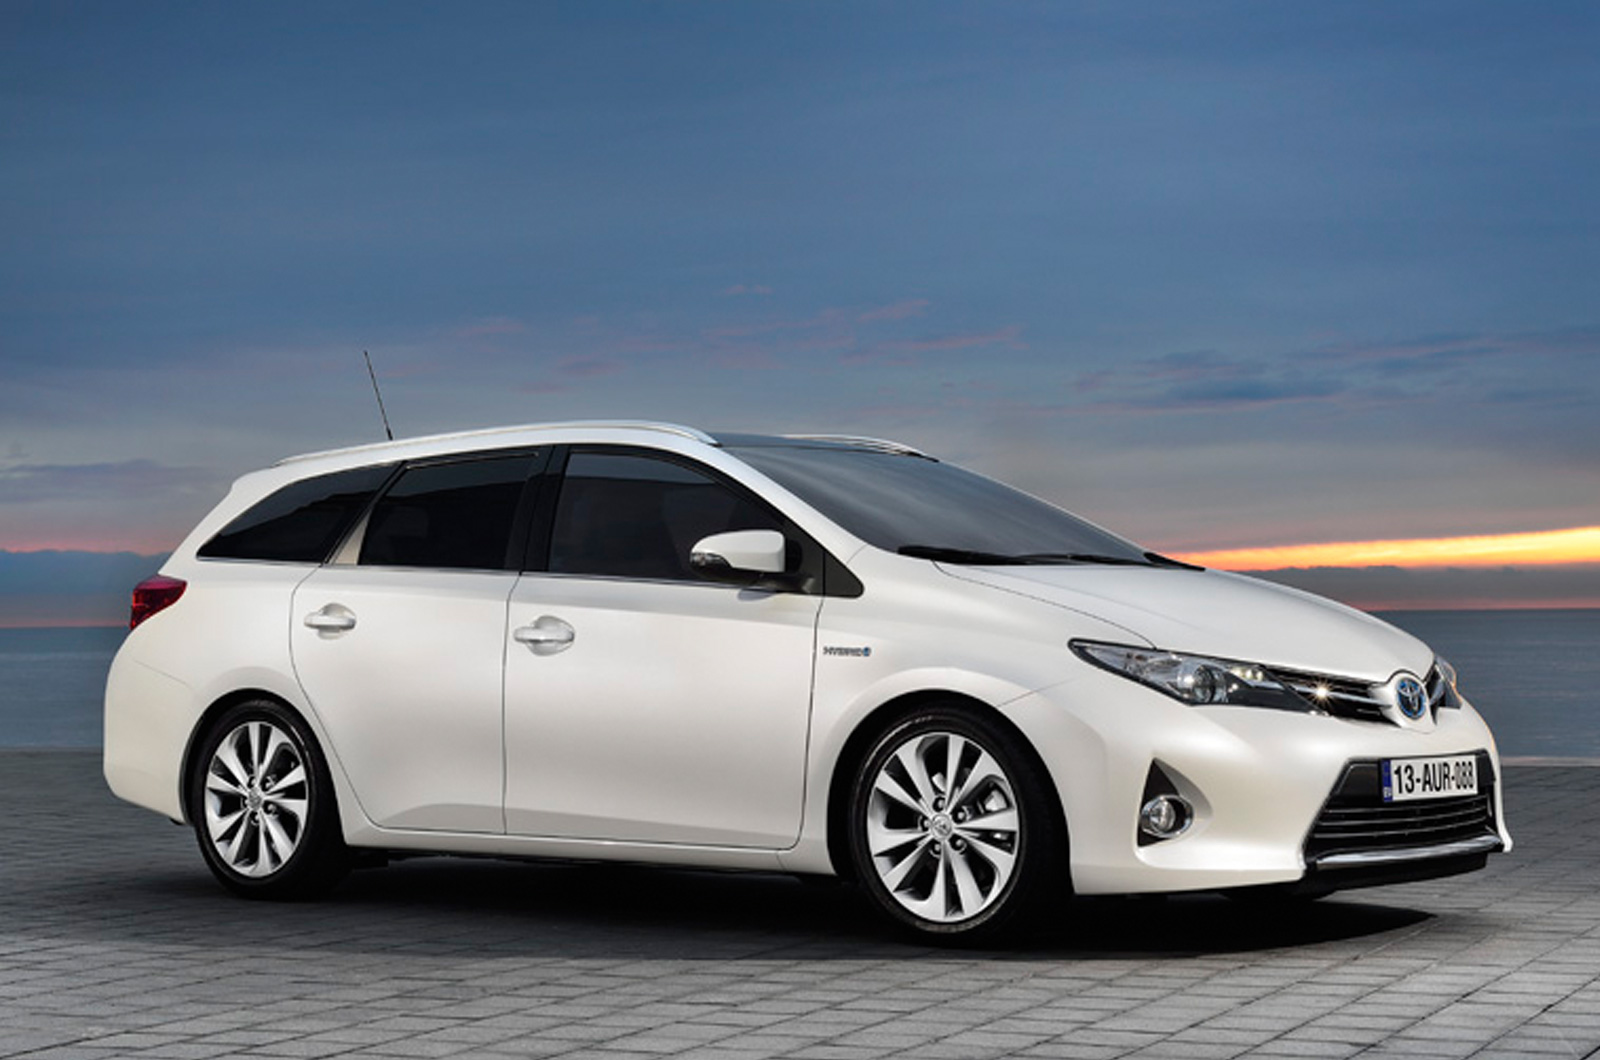 all new camry logo cover ban serep grand avanza toyota auris touring sports specs revealed - autoevolution